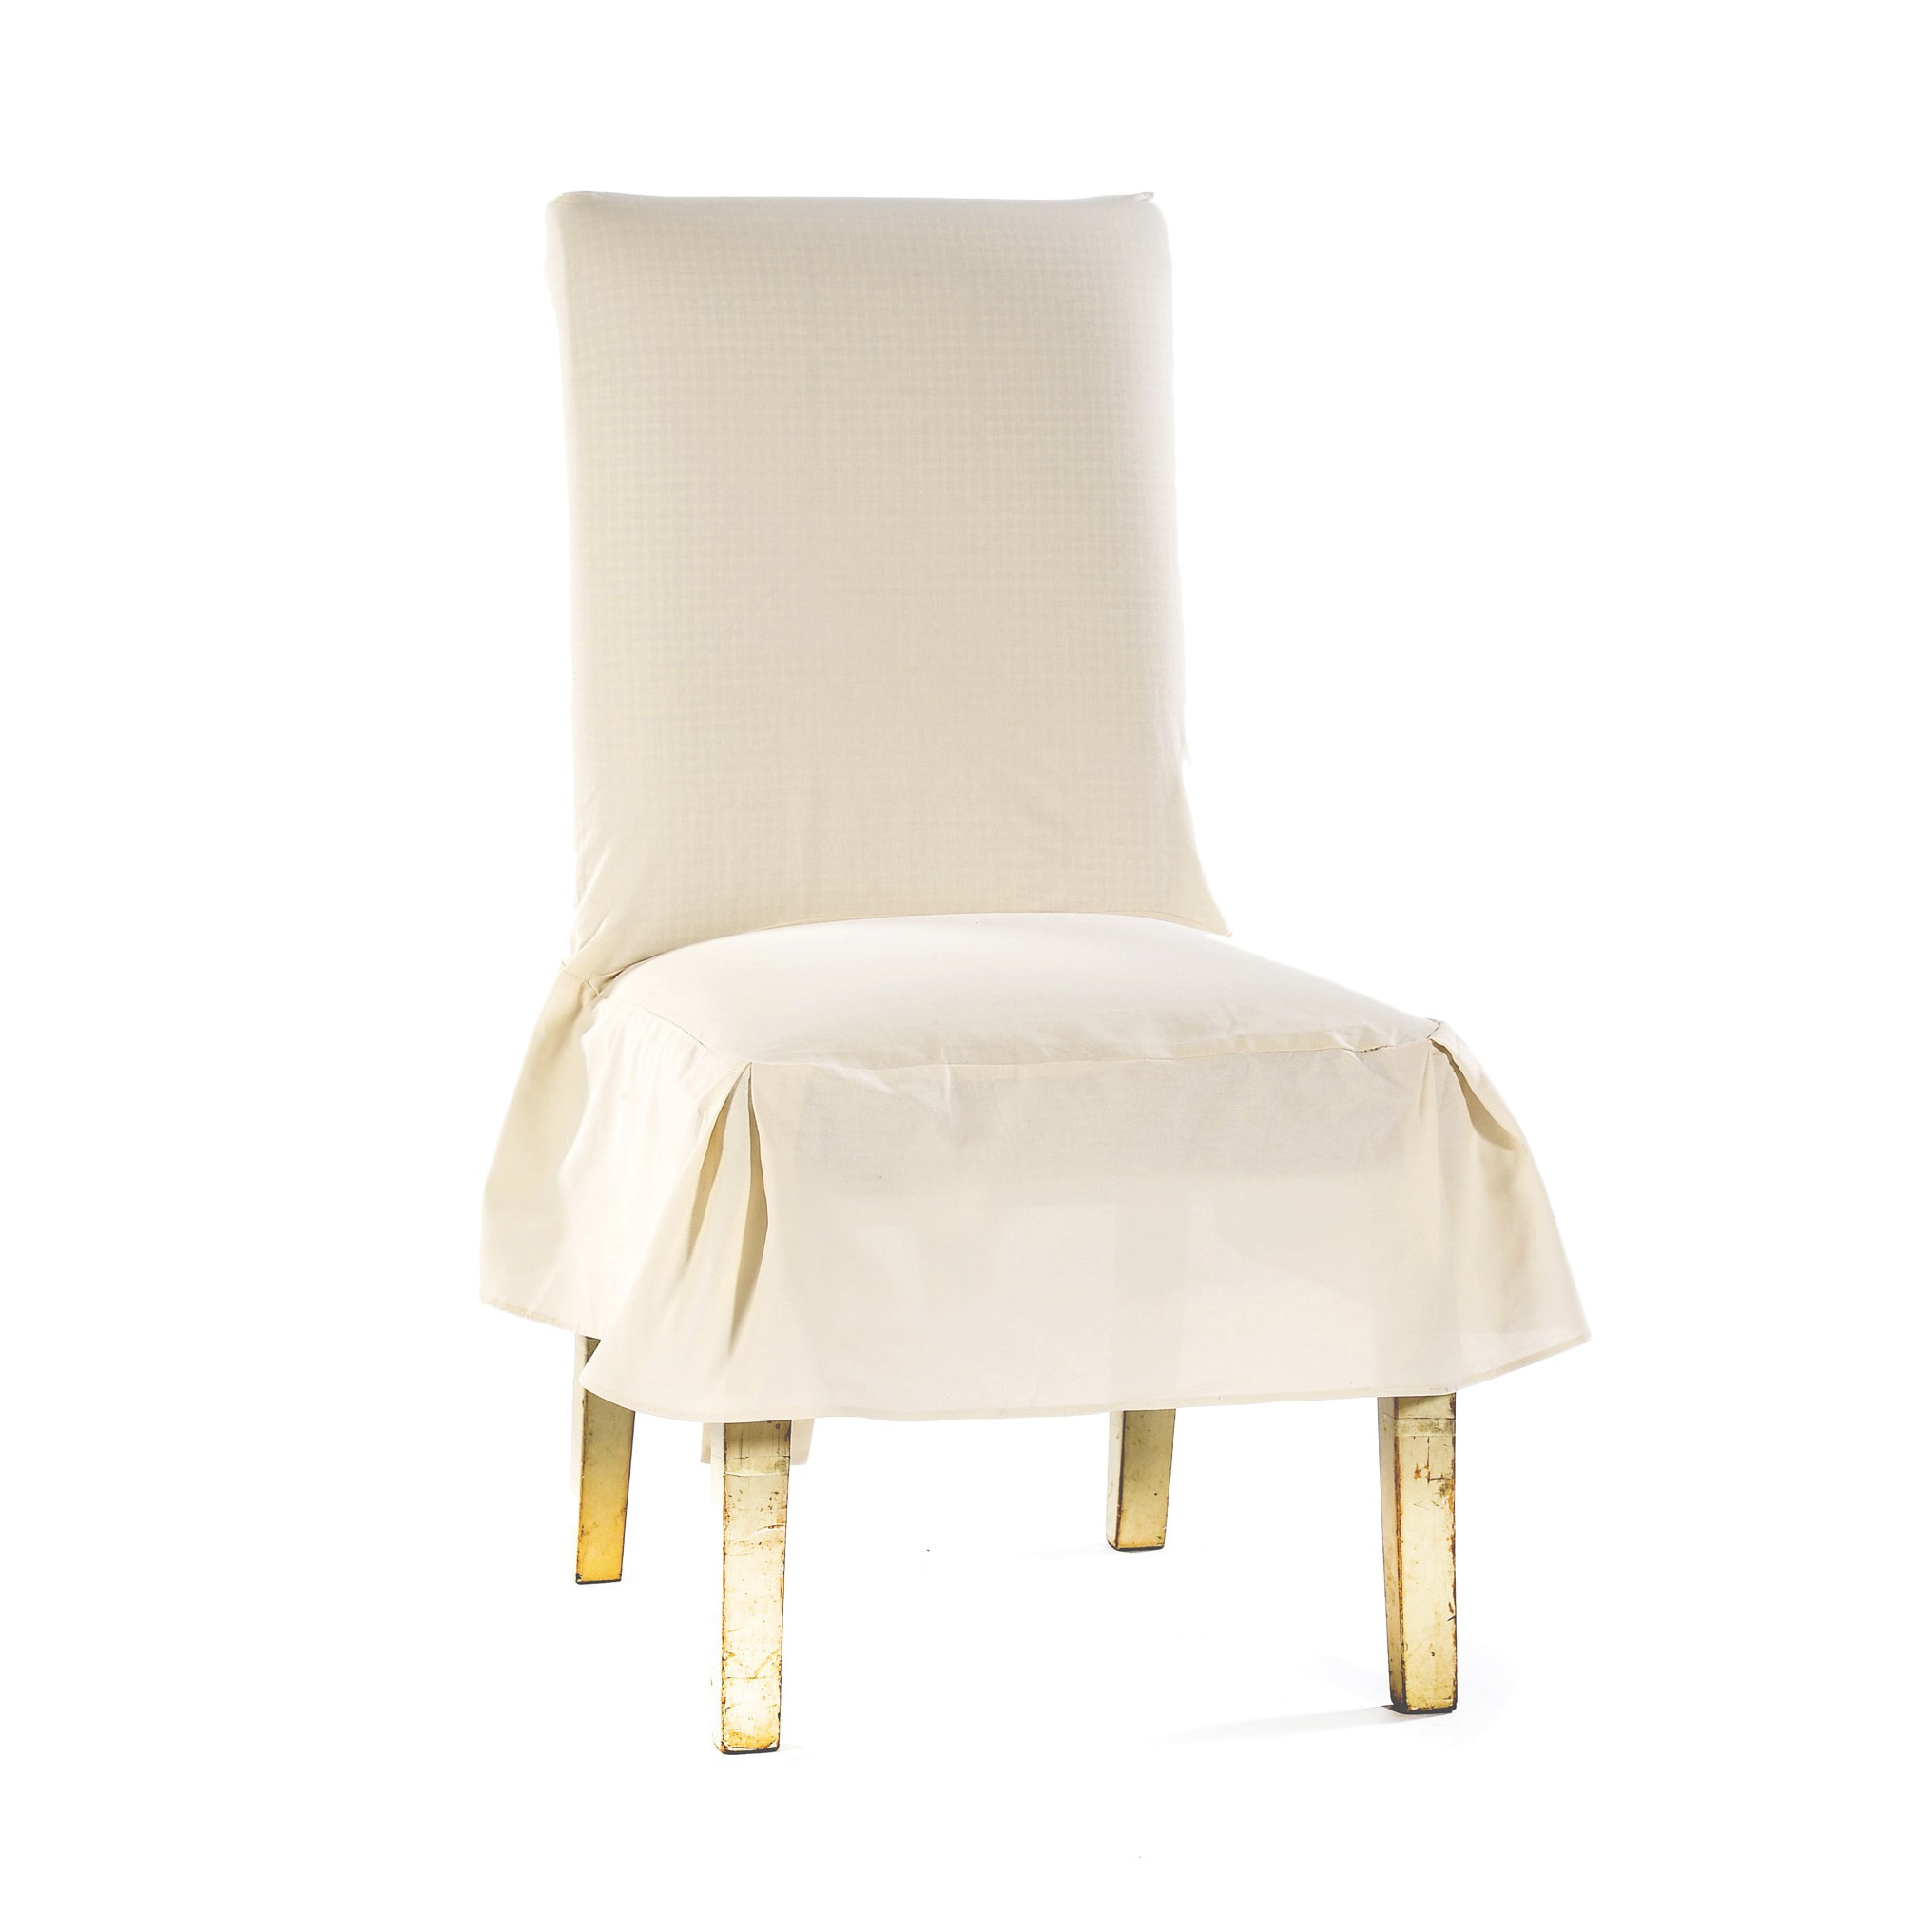 Dining Chair Slipcover Classic Cotton Duck Dining Chair Slipcovers Set Of 2 Ebay